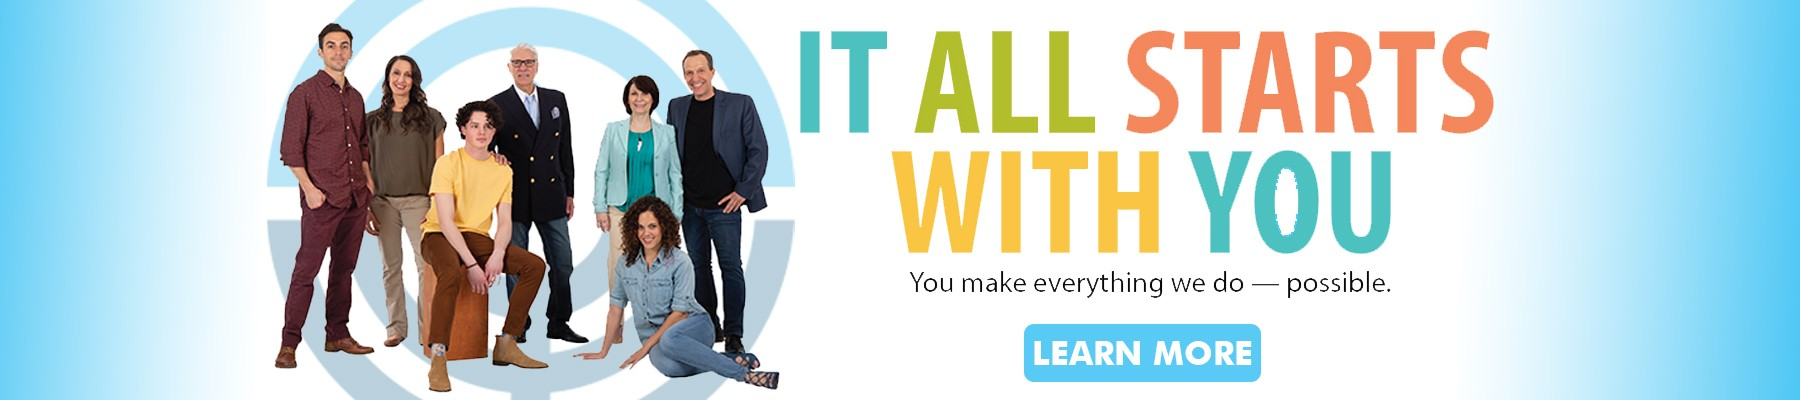 All Starts With You - 1800 x 400.jpg